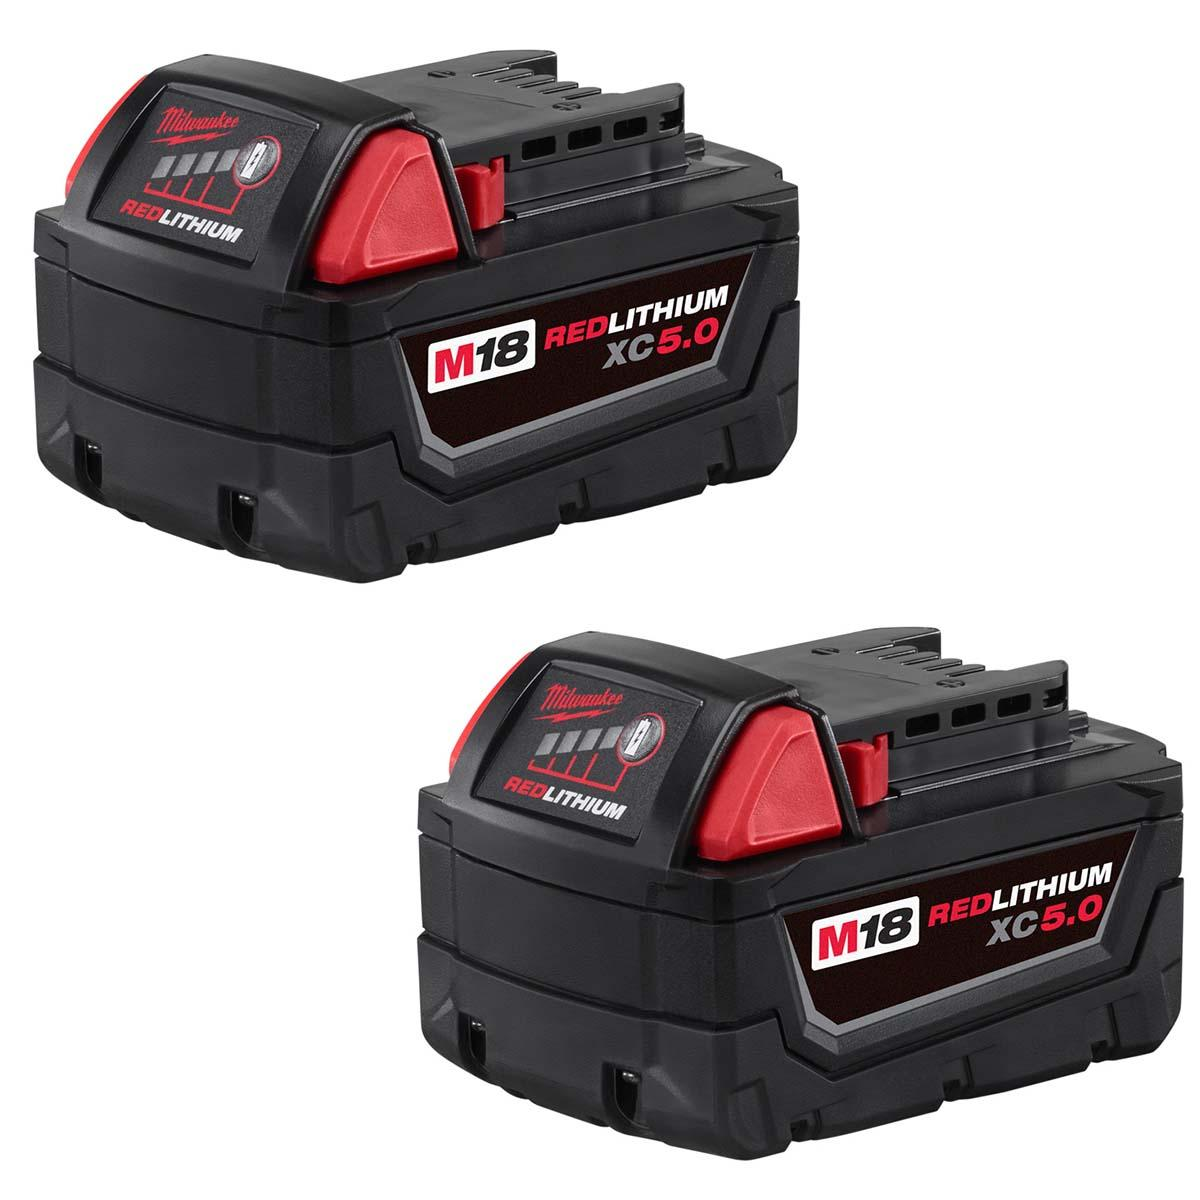 "M18â""¢ REDLITHIUMâ""¢ XC5.0 Extended Capacity Battery Two Pack"